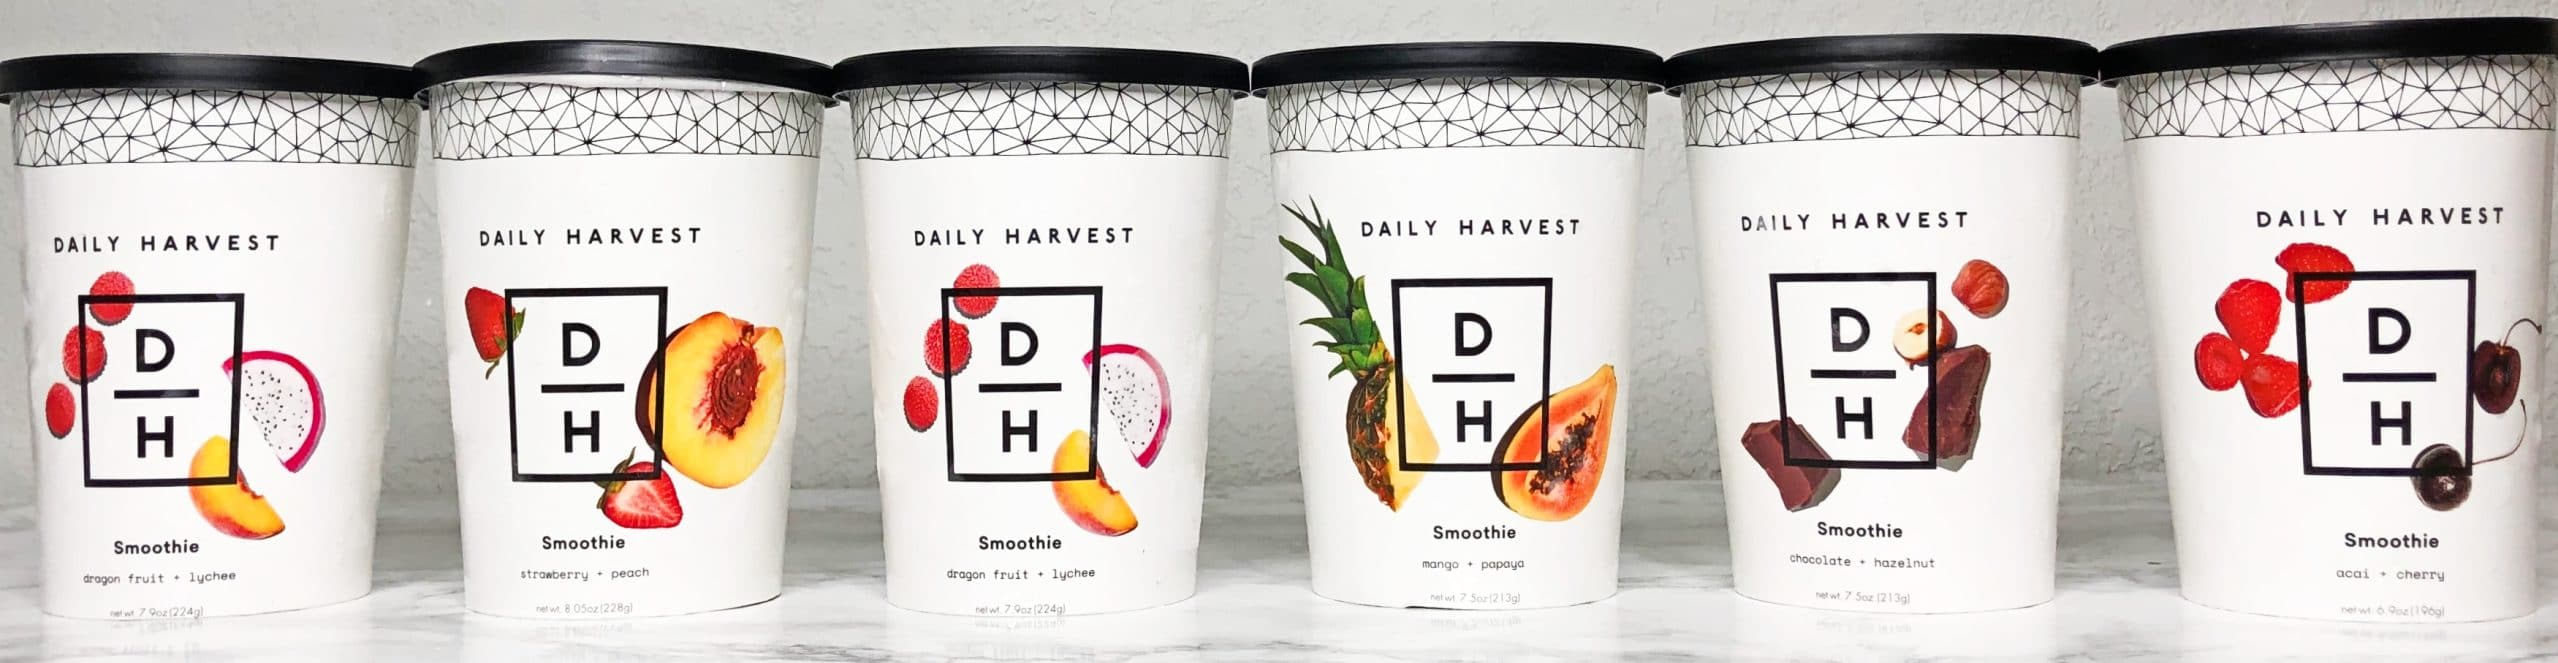 Daily Harvest Reviews - Smoothies